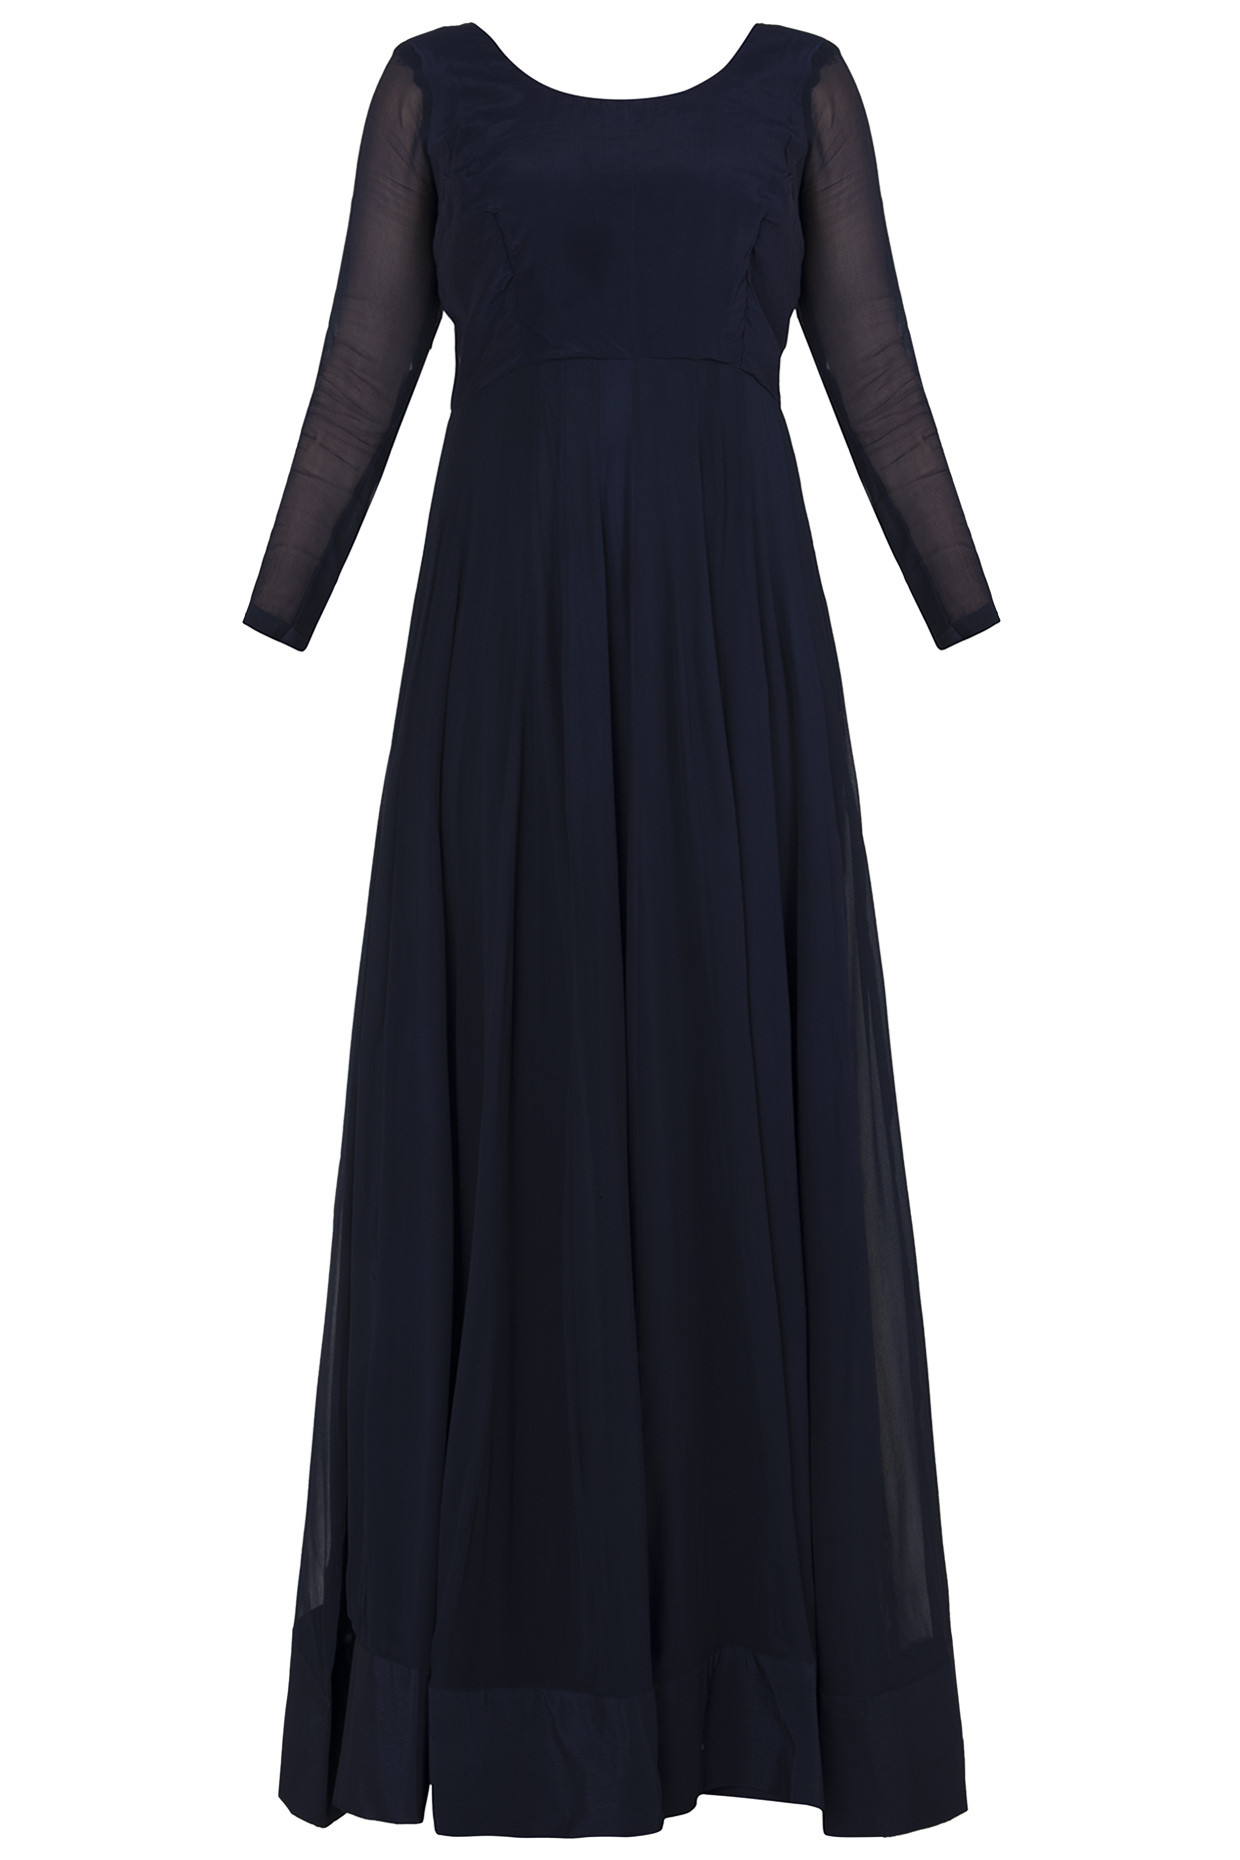 Midnight Blue Embroidered Anarkali Gown by Rishi & Vibhuti